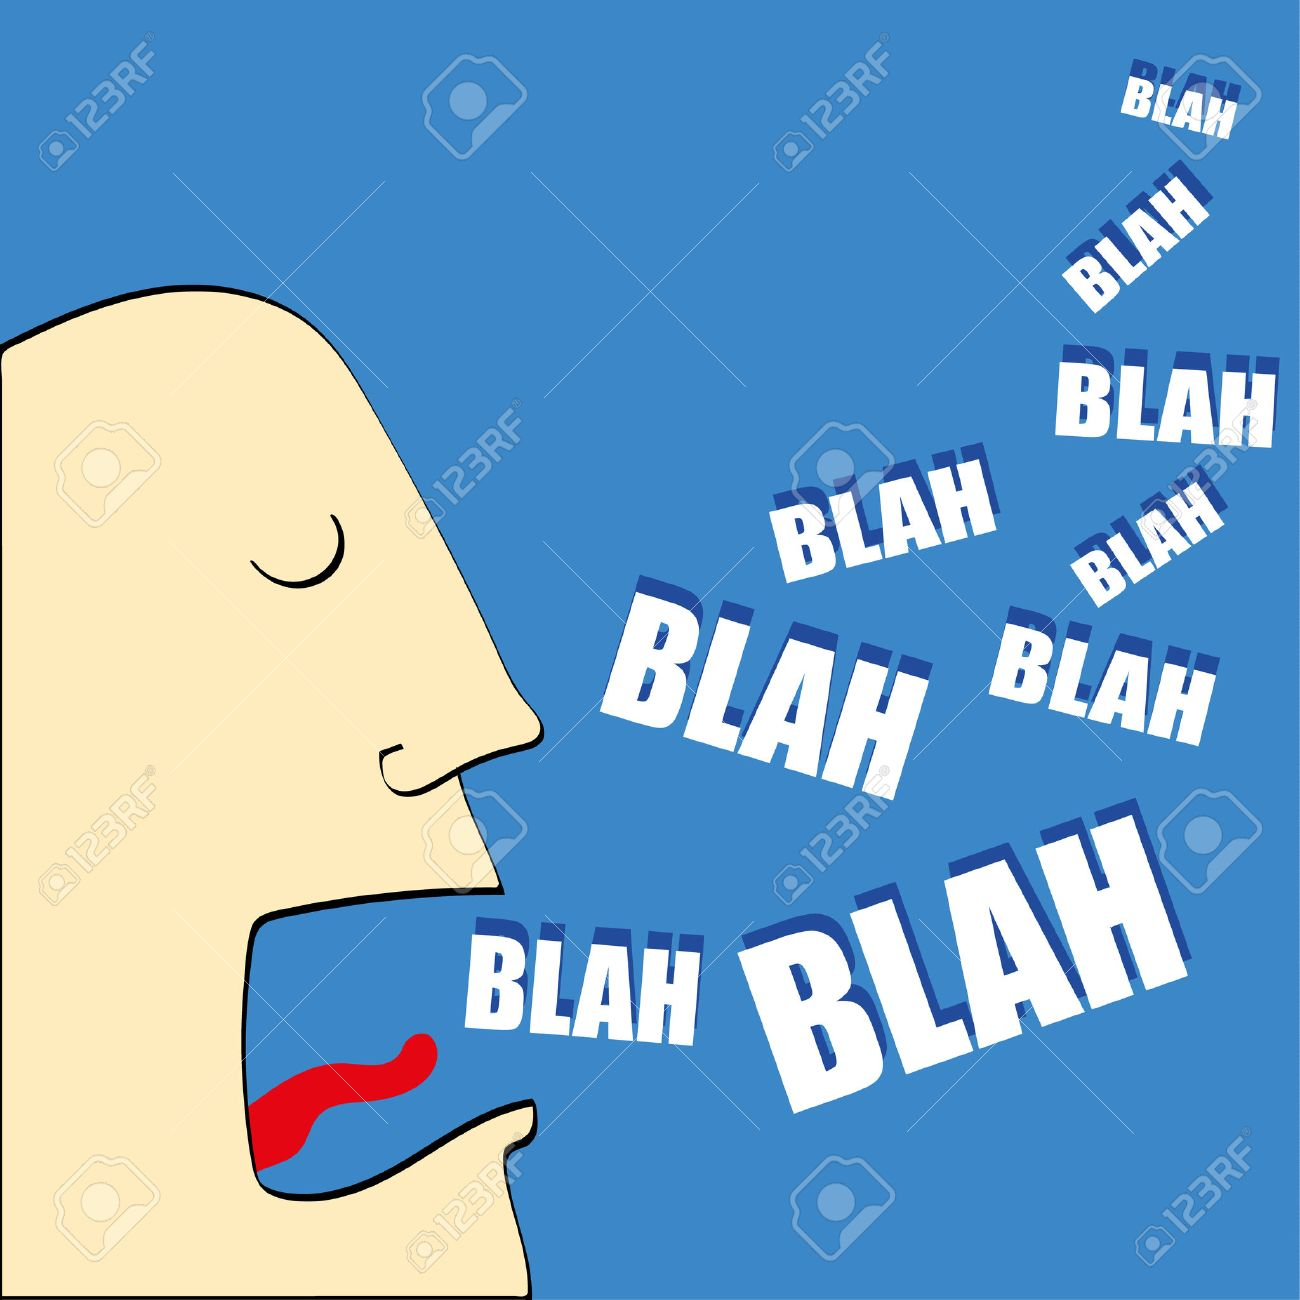 Caricature of man's head with his mouth open and the words Blah,Blah,Blah coming out in white text - 56105066